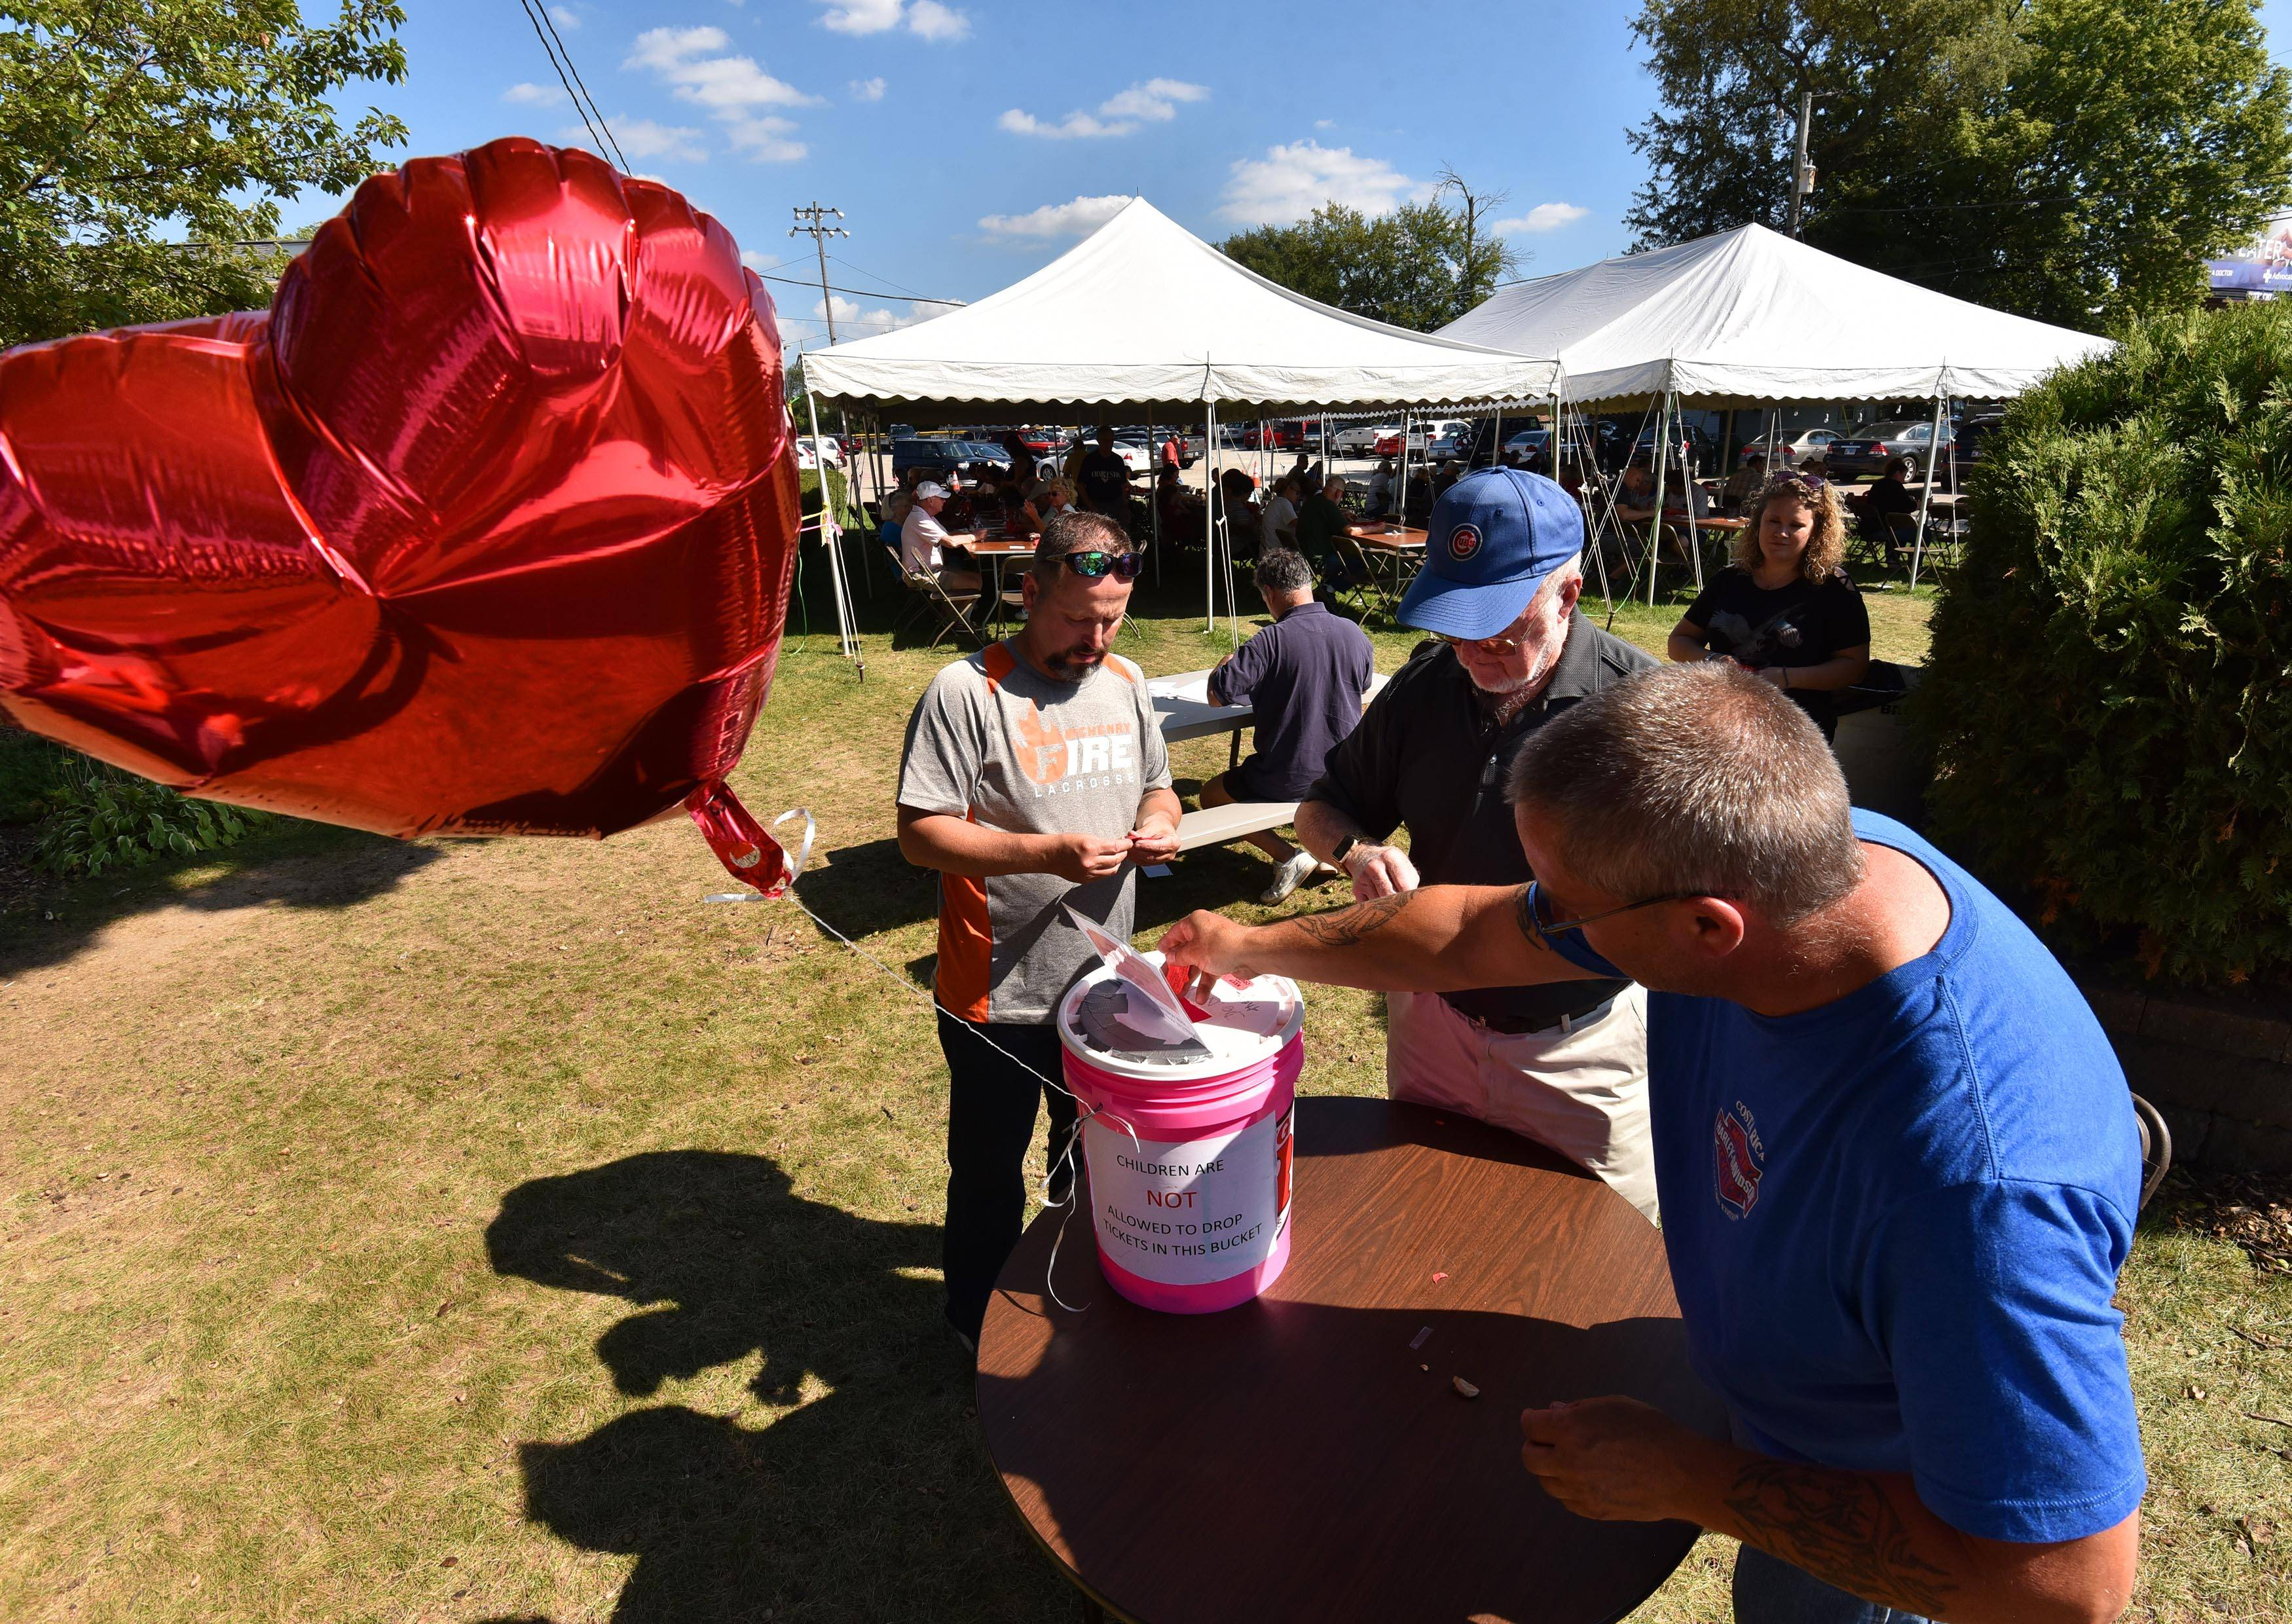 People drop their completed tickets into buckets as others add their information under tents Wednesday for next week's final Queen of Hearts raffle at the McHenry VFW Post 4600.